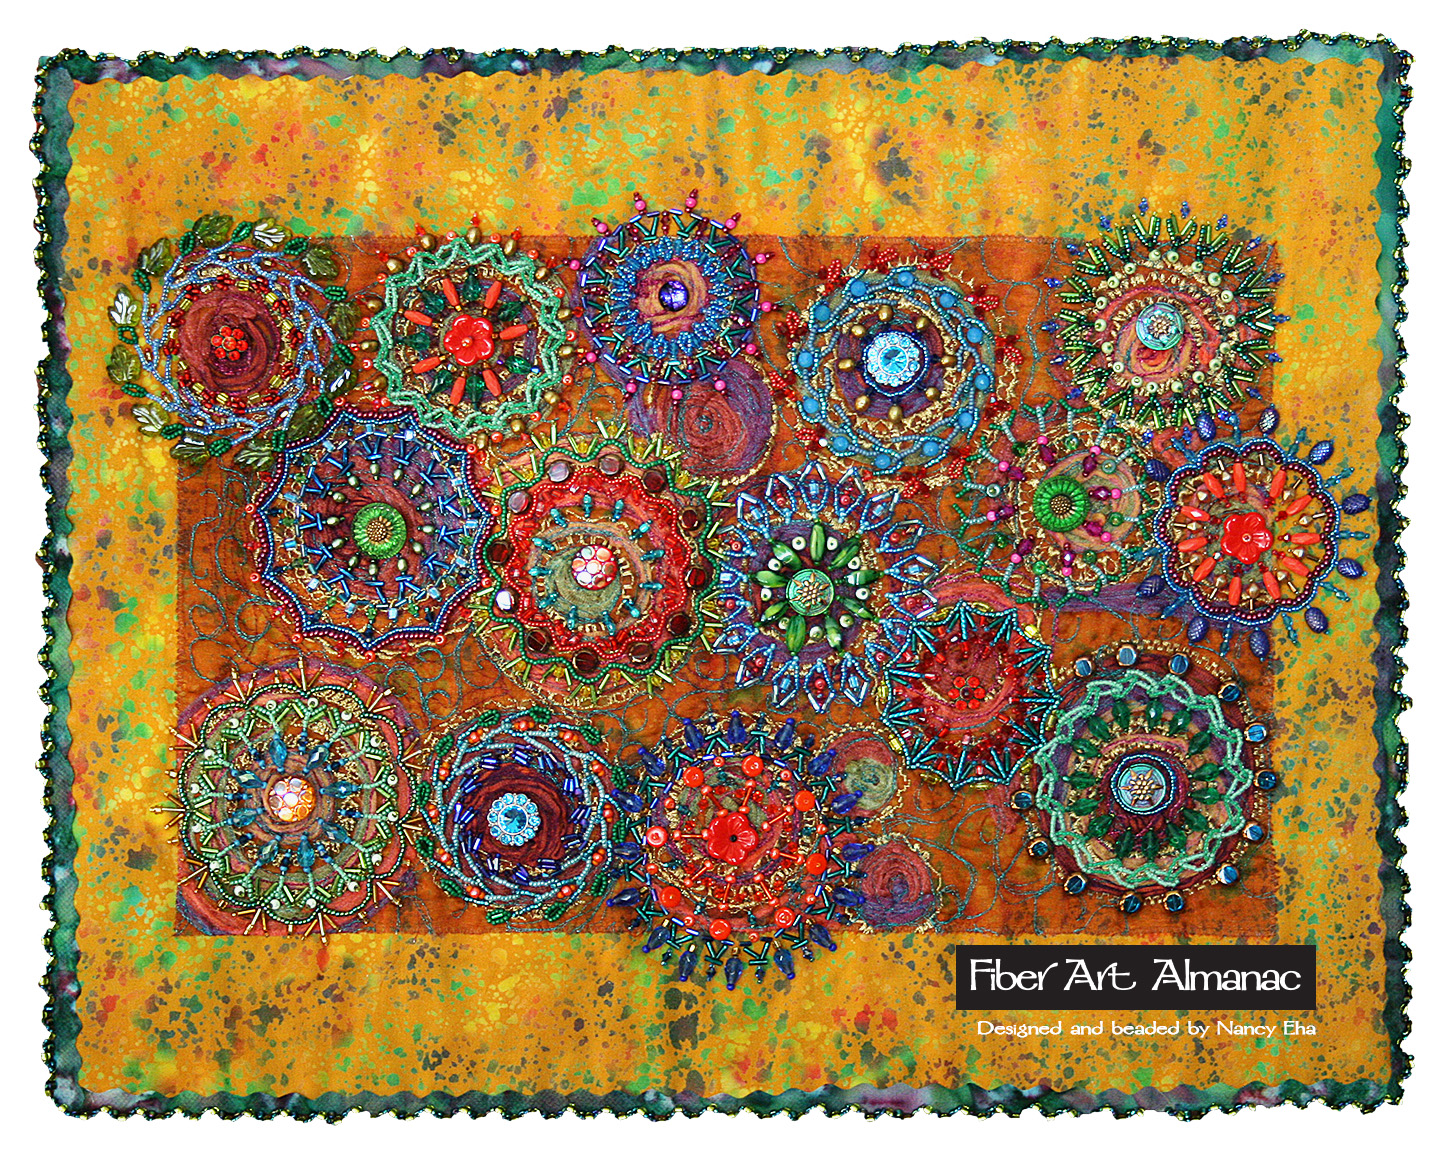 Art elements and principles of design in beaded quilts | Midwest ... : artistic quilts - Adamdwight.com